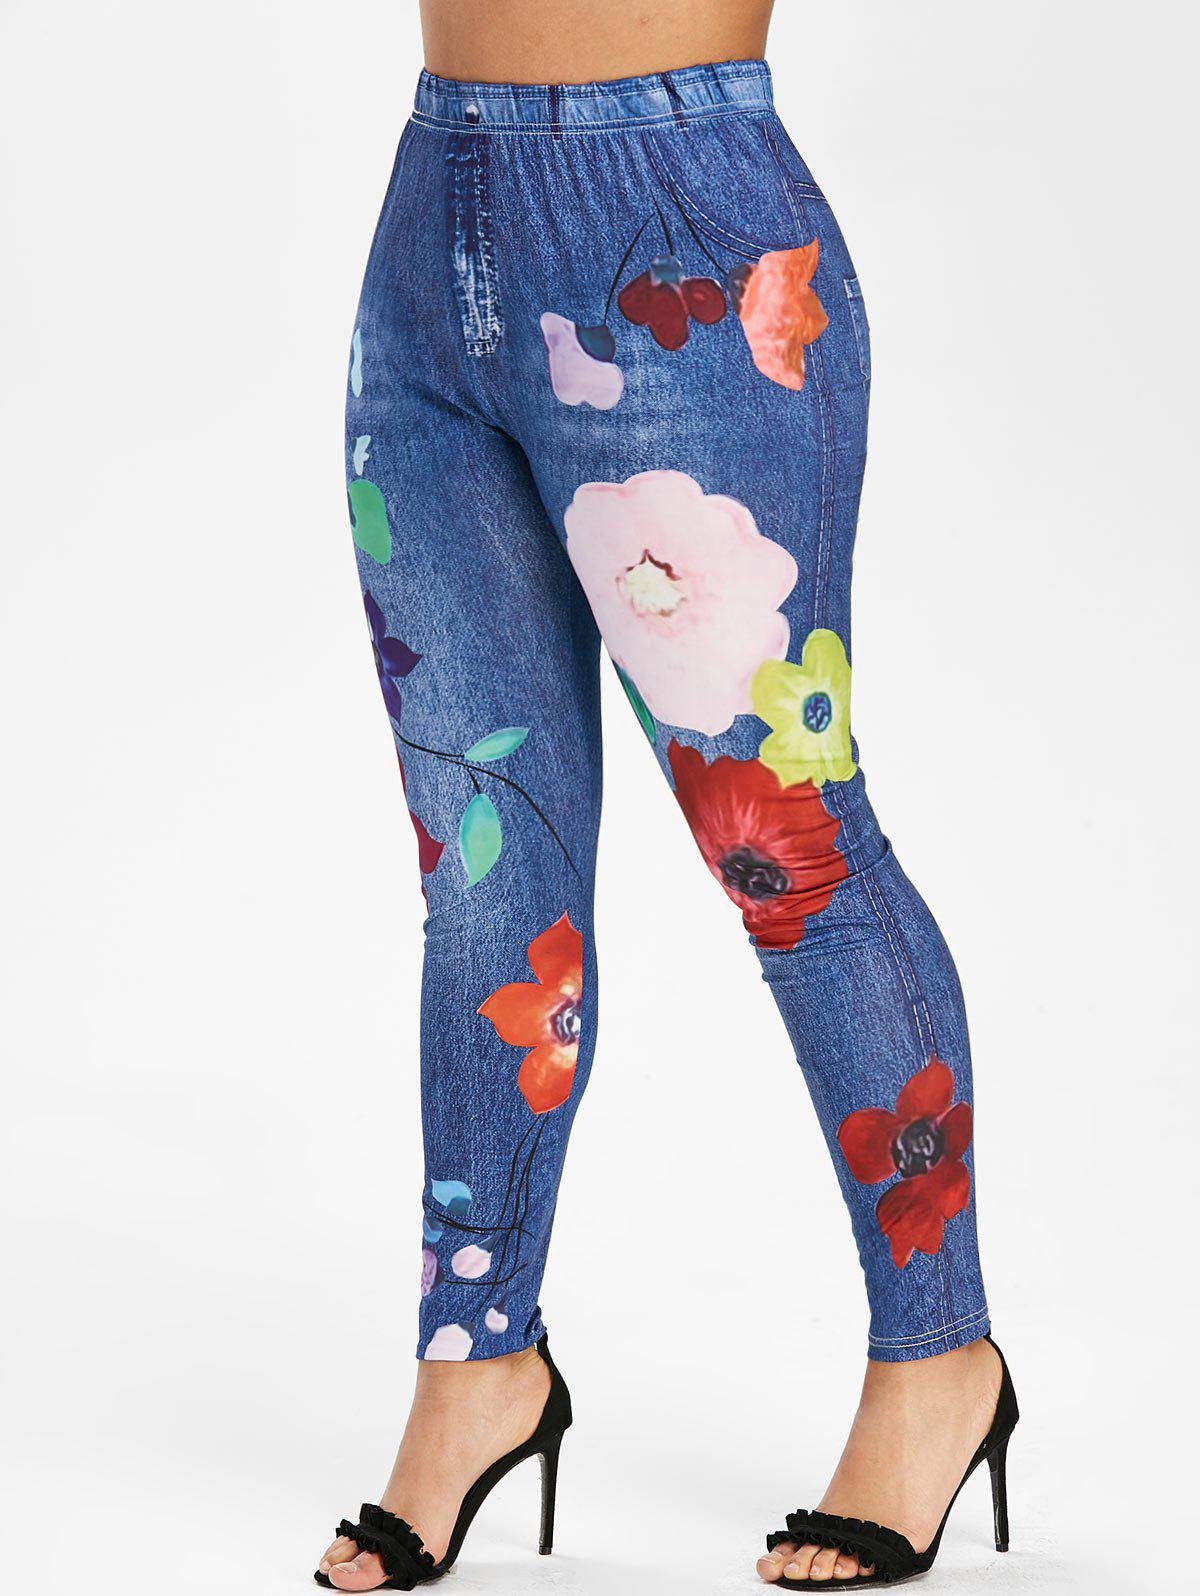 Plus Size Jeans Floral Printed Fitted Leggings - OCEAN BLUE 1X